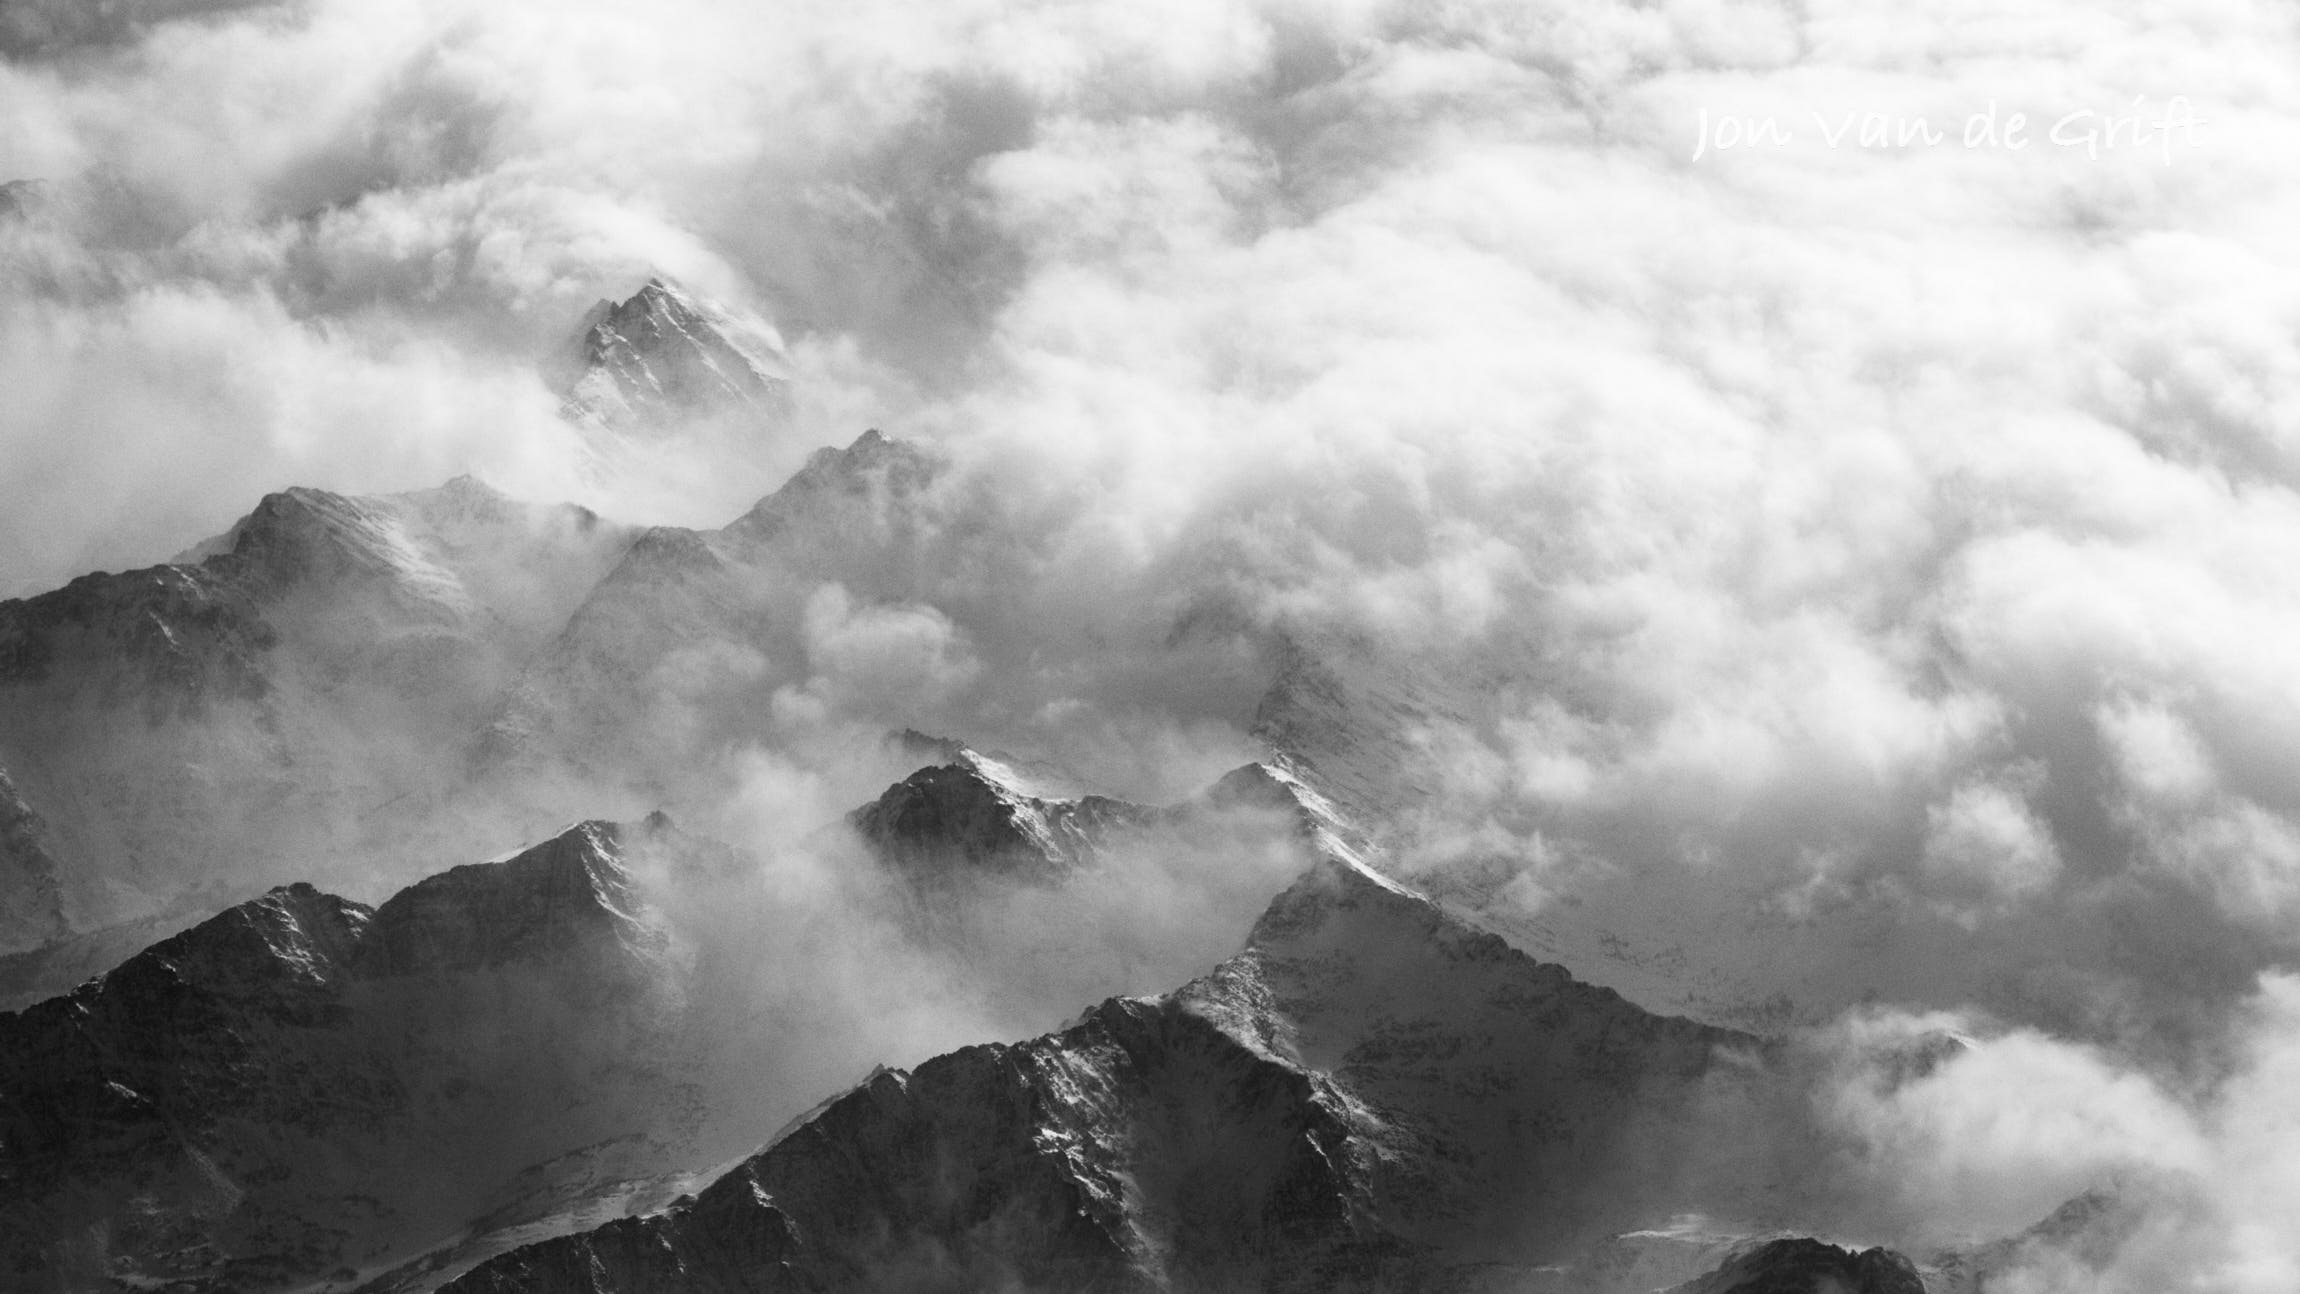 Black and white aerial photograph of clouds over a snow covered mountain range in winter